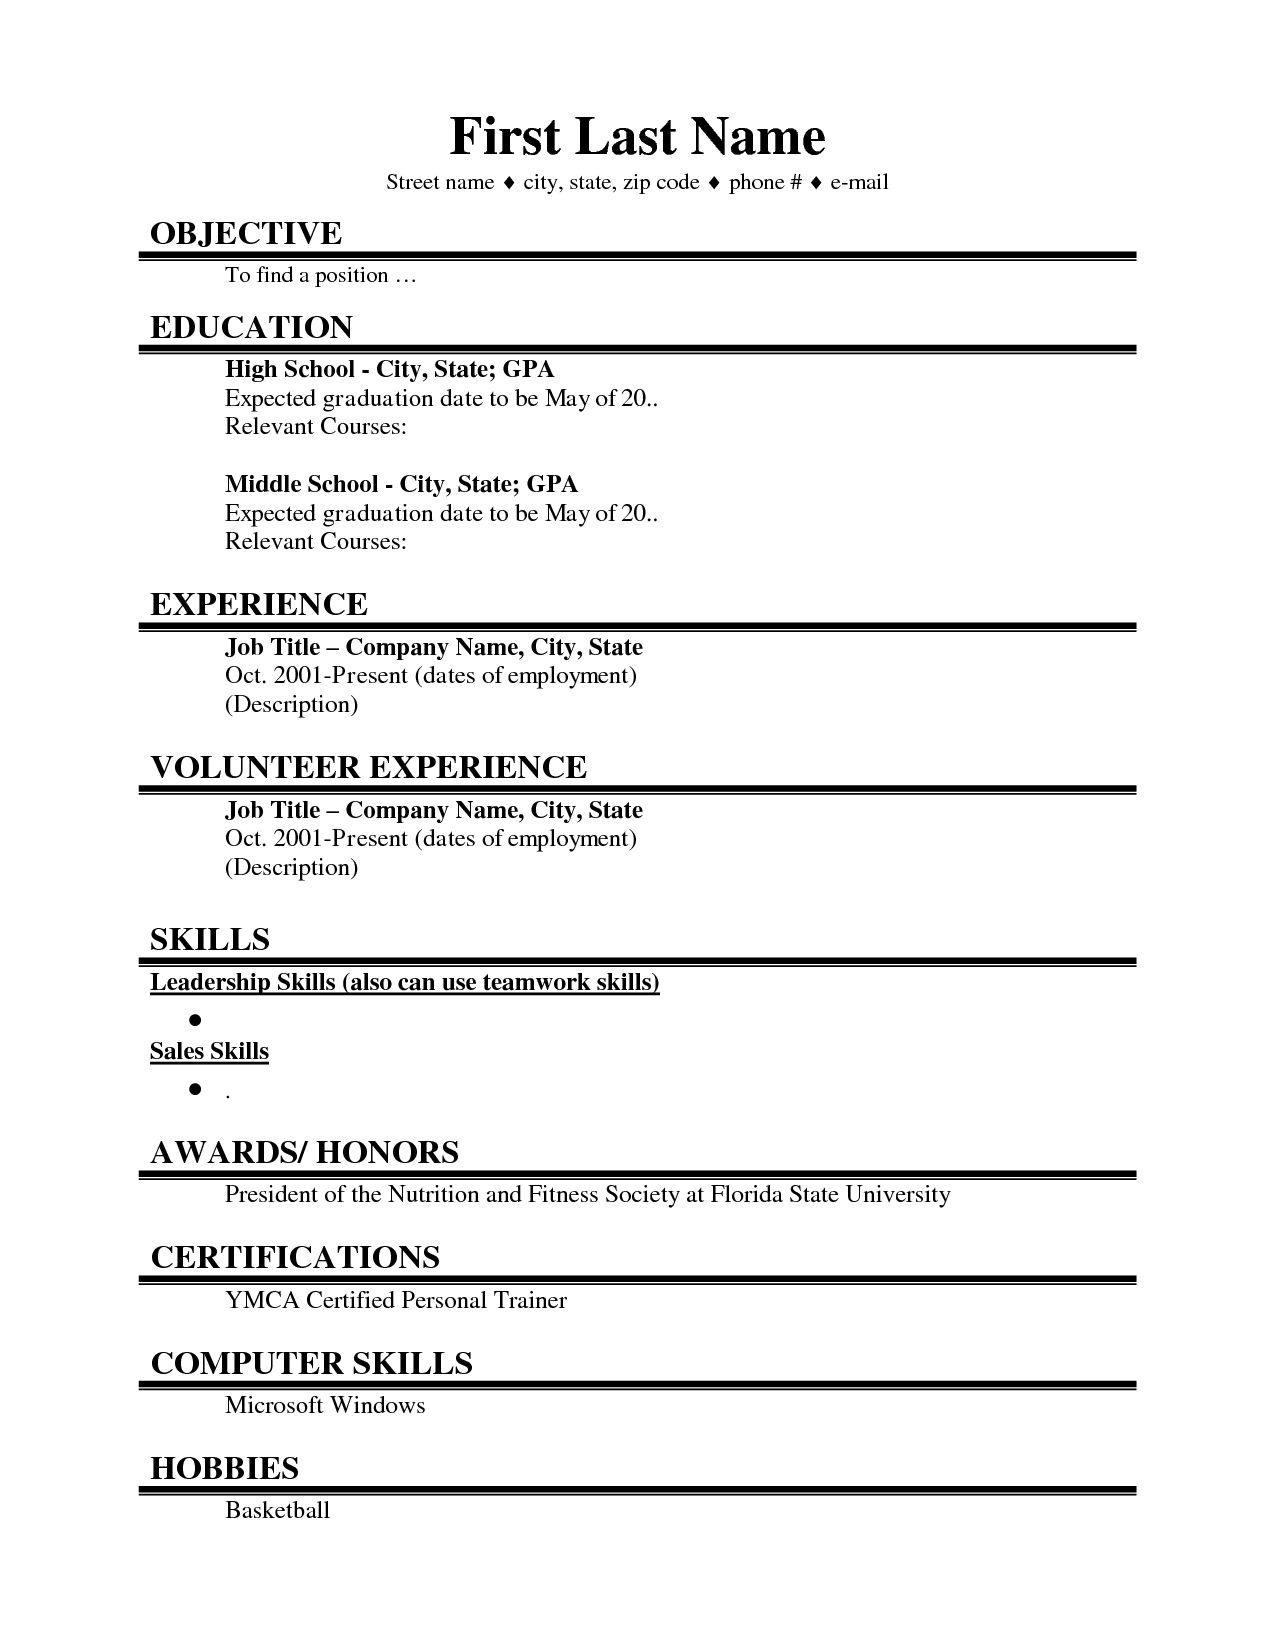 student first job resume templates layout module lead heavy equipment mechanic examples Resume First Job Resume Layout